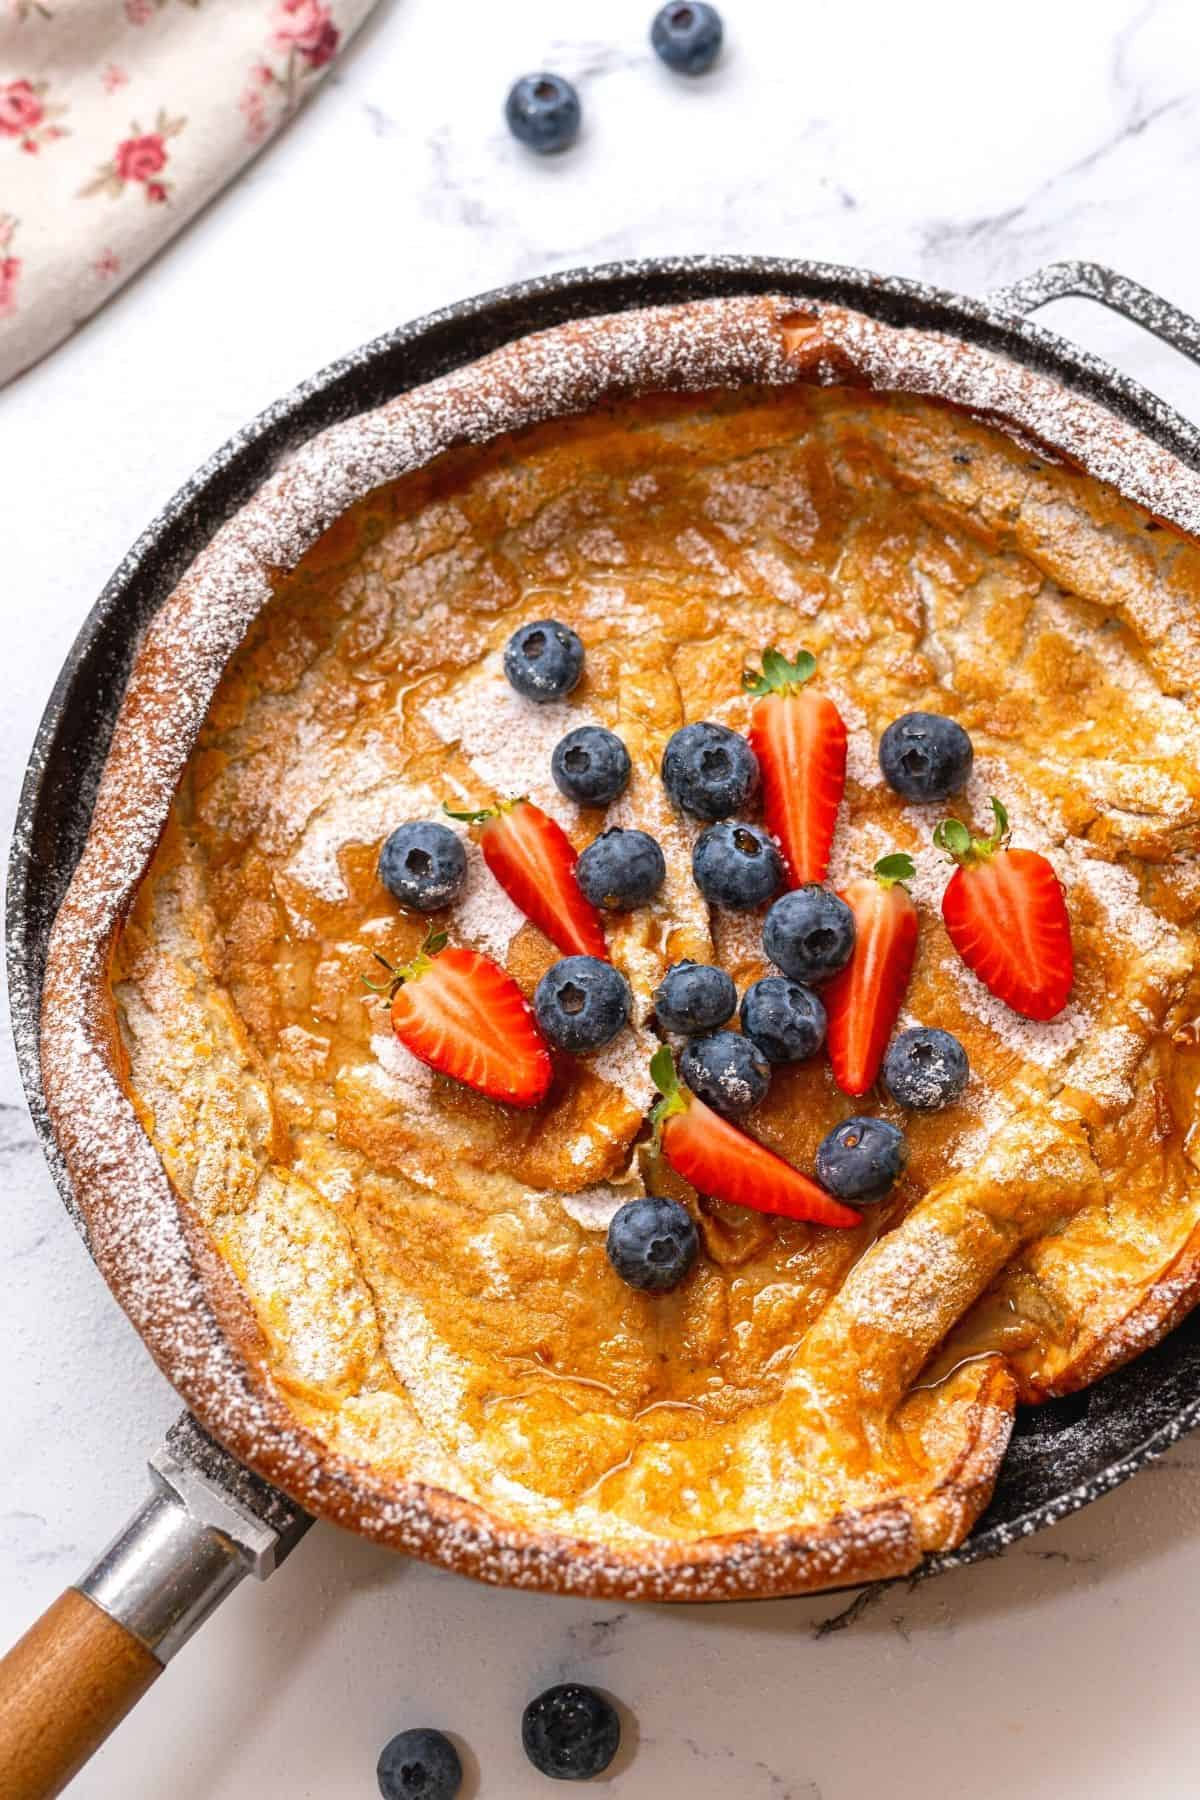 Baked Dutch Baby Pancake in cast iron skillet with topped with berries.